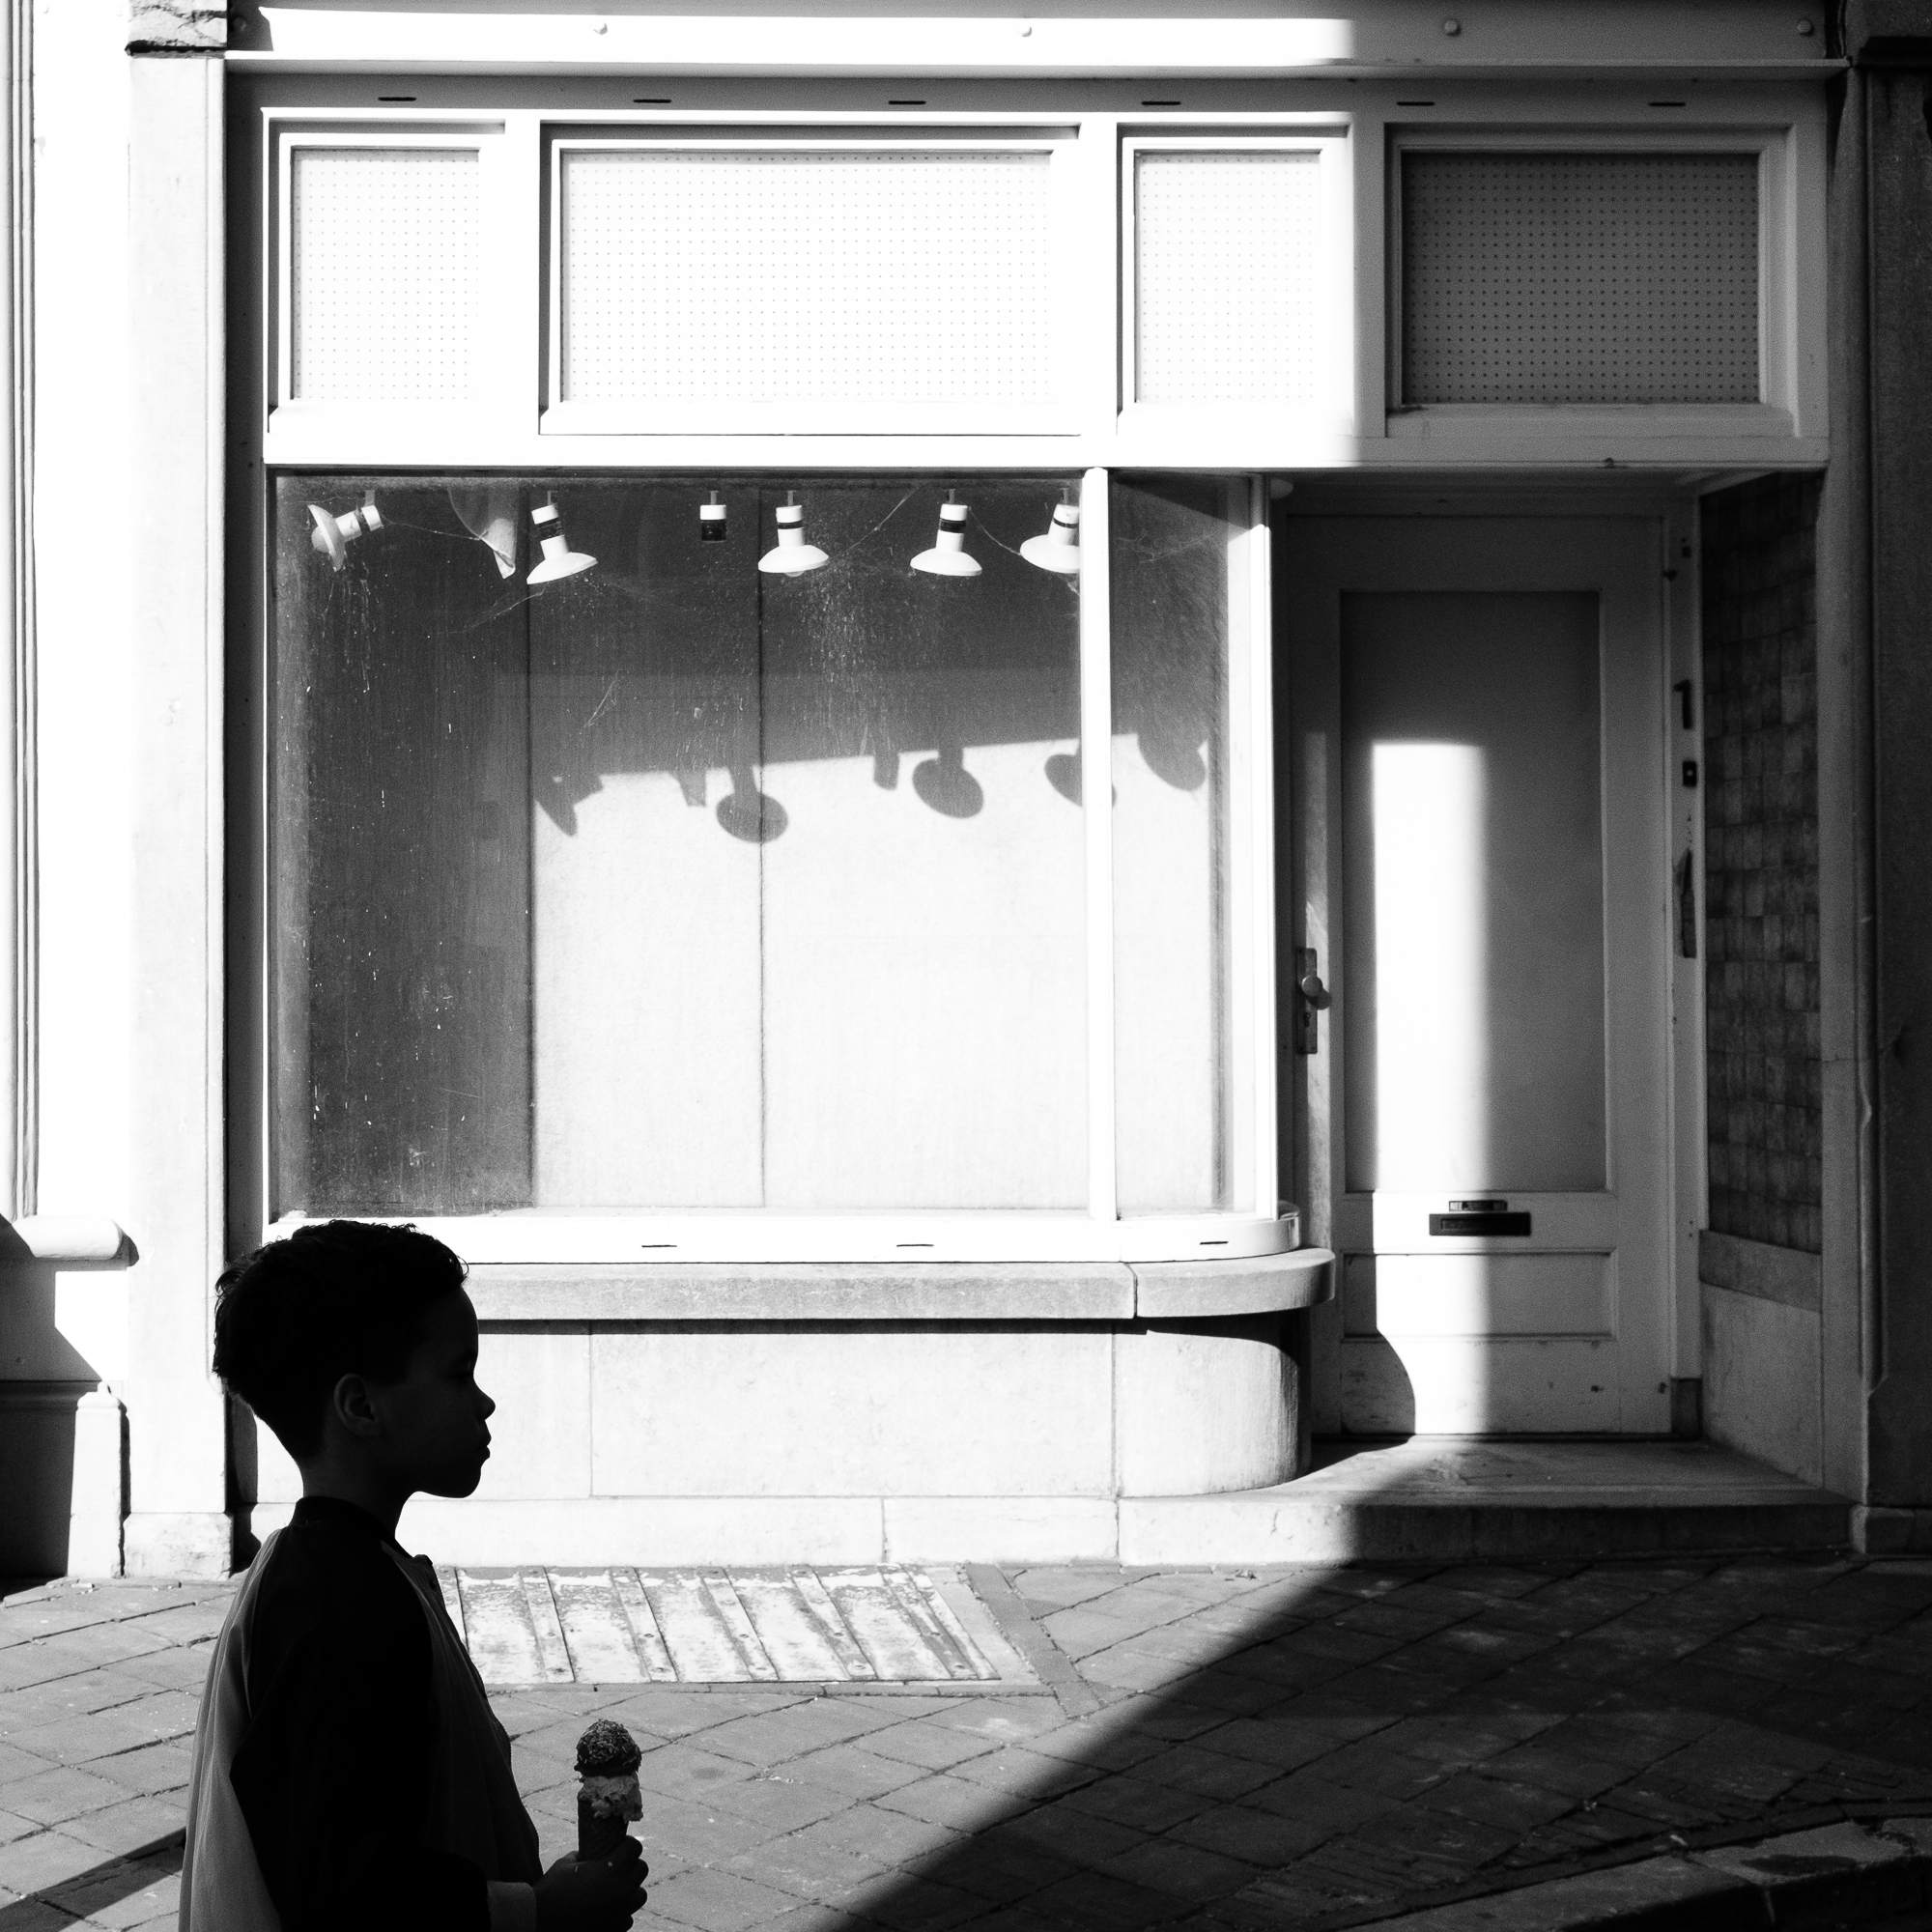 An empty store window with a sihouette of a kid with an icecream